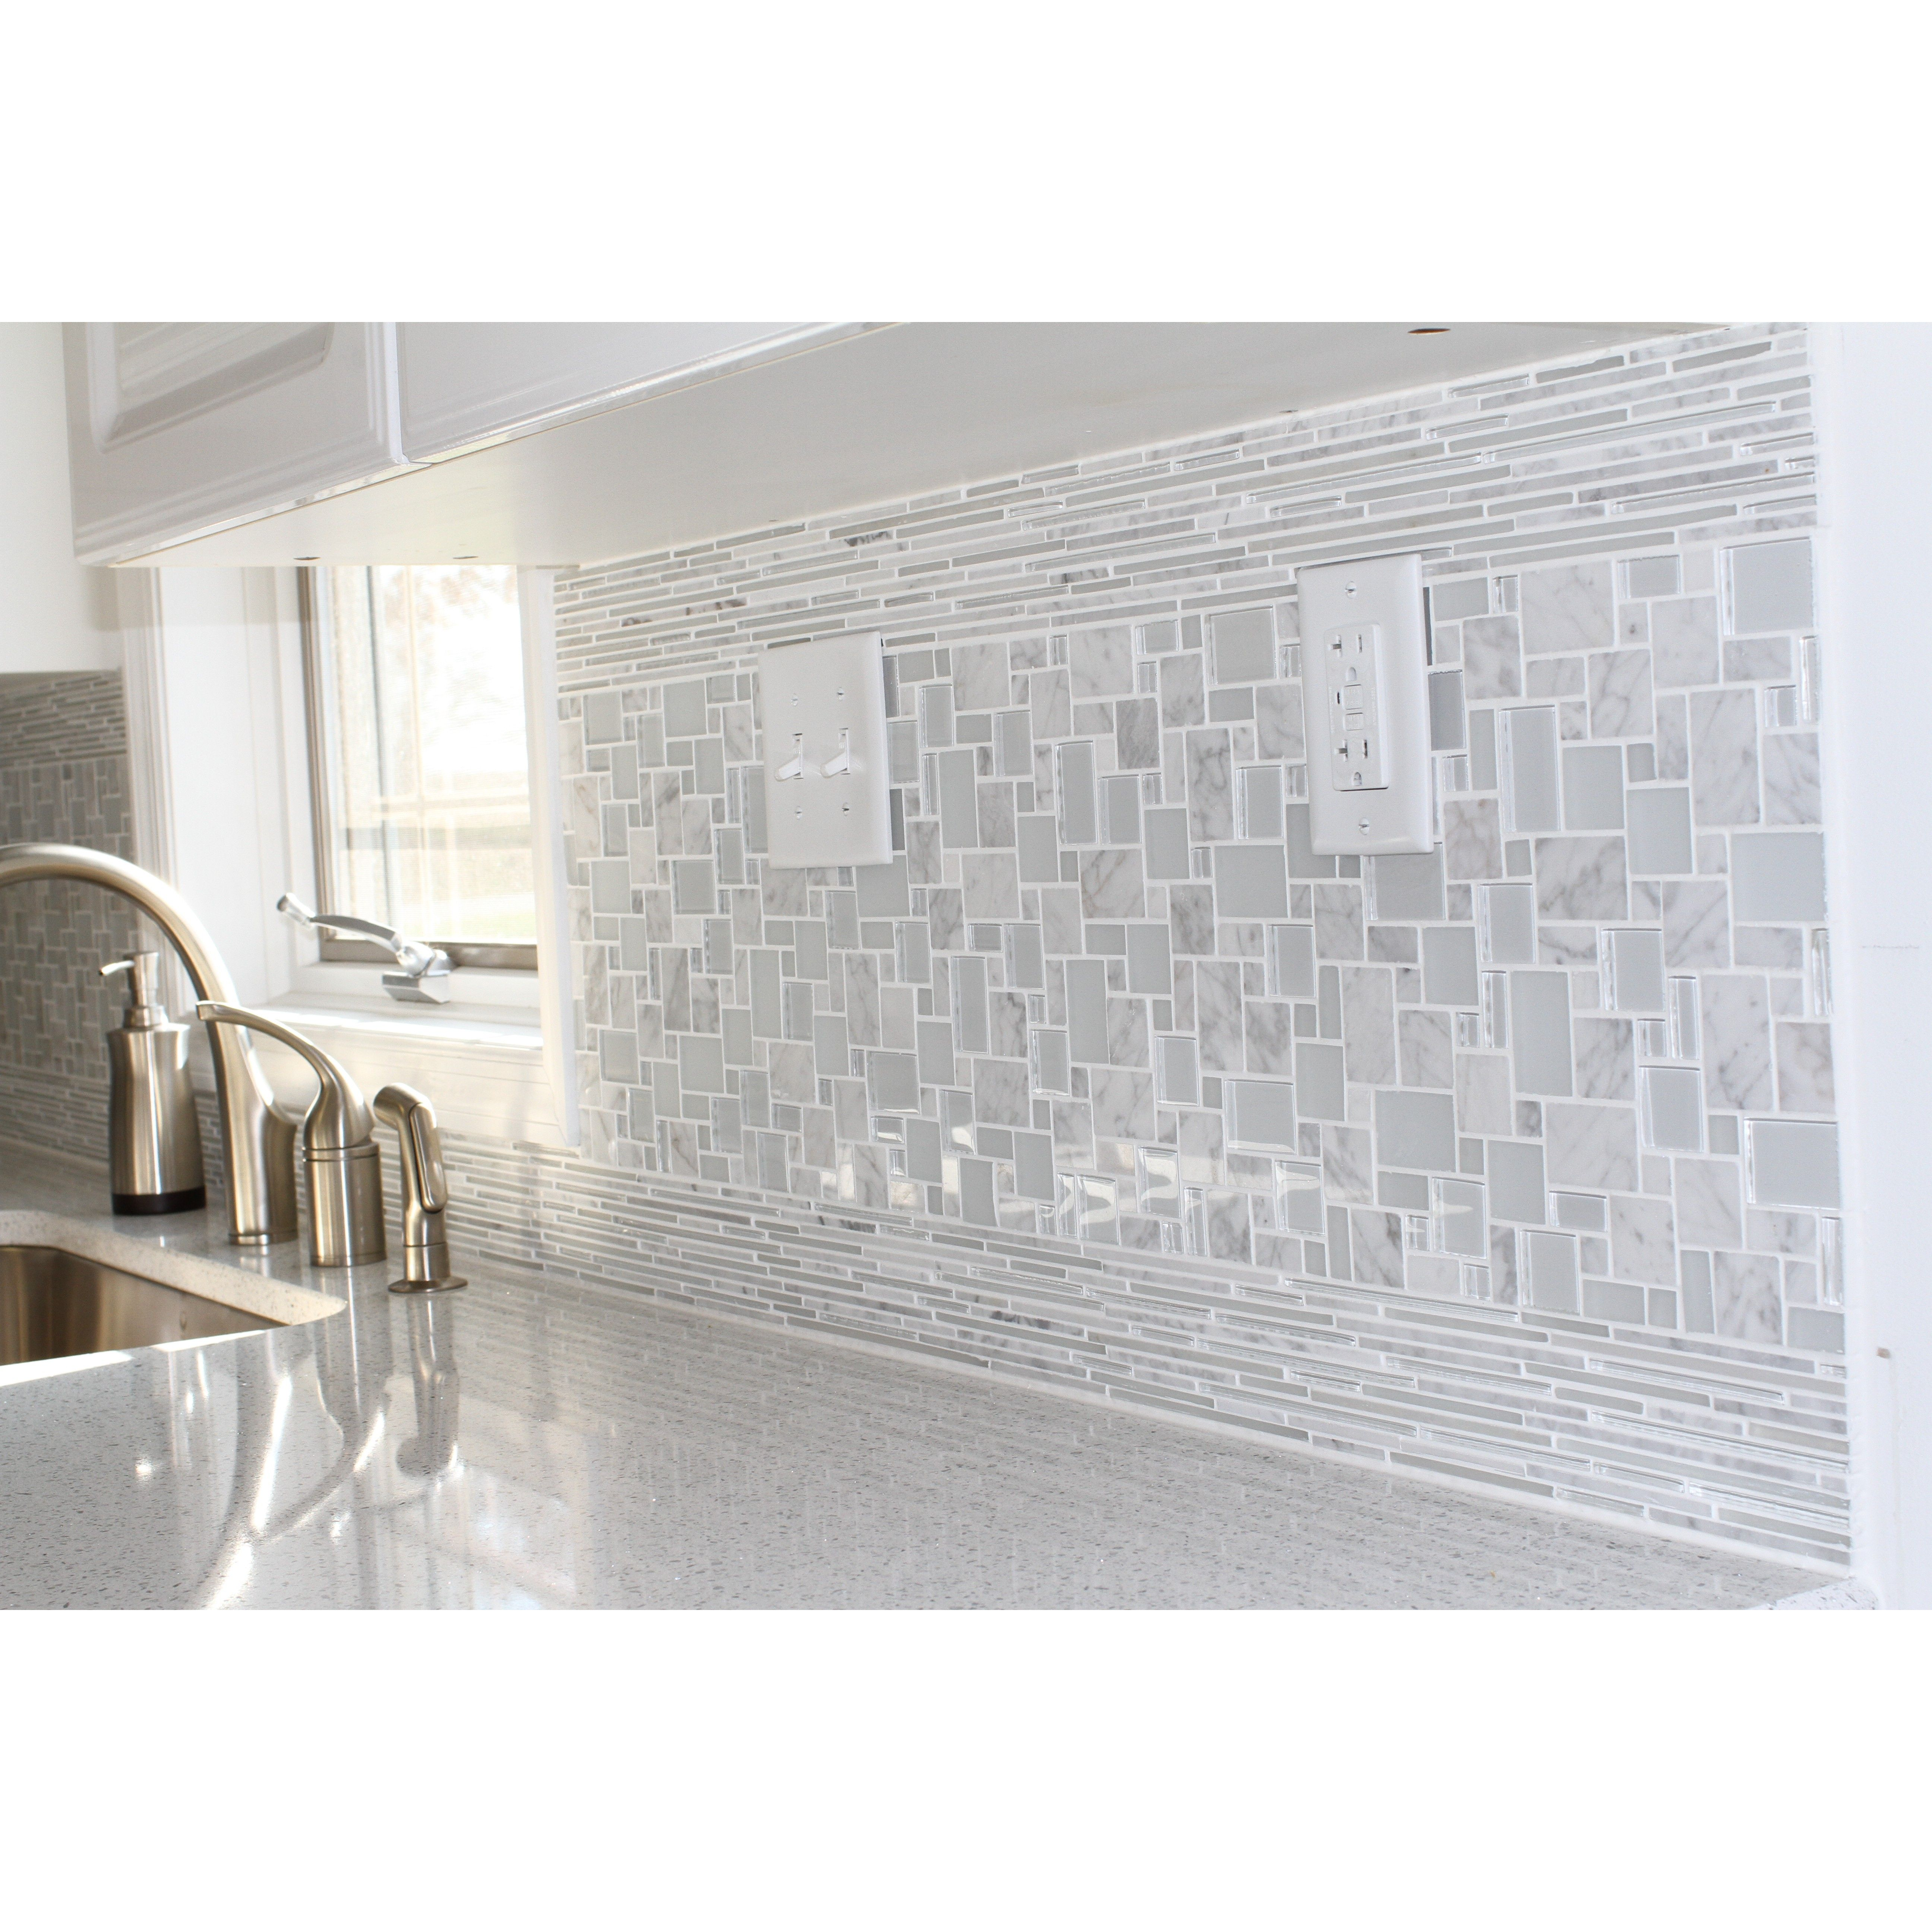 Shop for breeze carrera ice piazza pattern glass and marble mosaic shop for breeze carrera ice piazza pattern glass and marble mosaic tile at tilebar dailygadgetfo Images